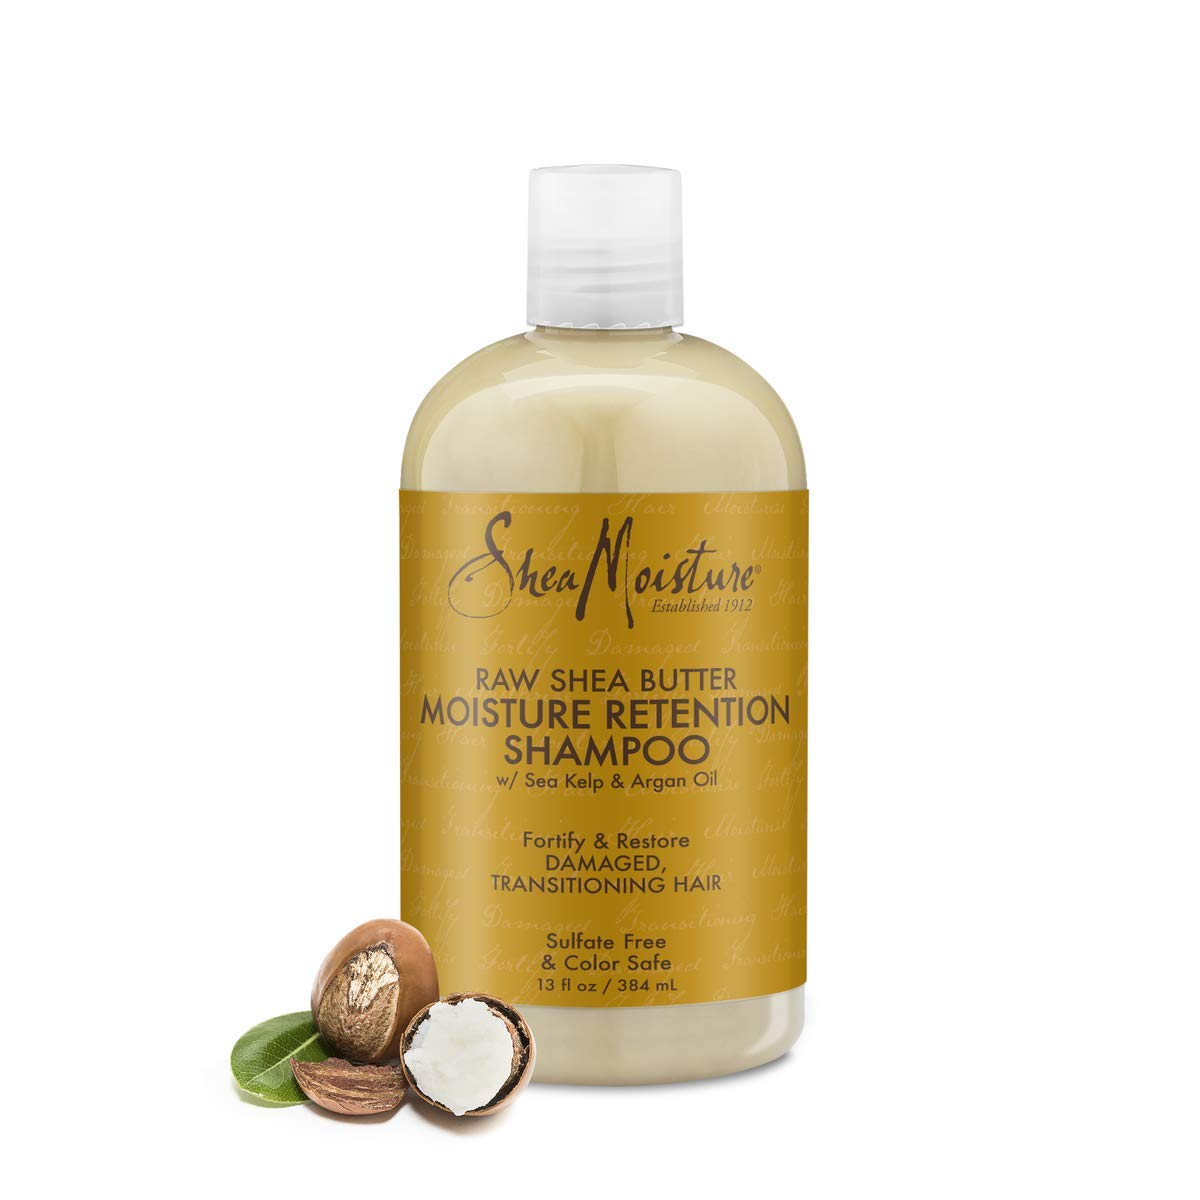 SheaMoisture Moisture Retention Shampoo for Dry, Damaged or Trans